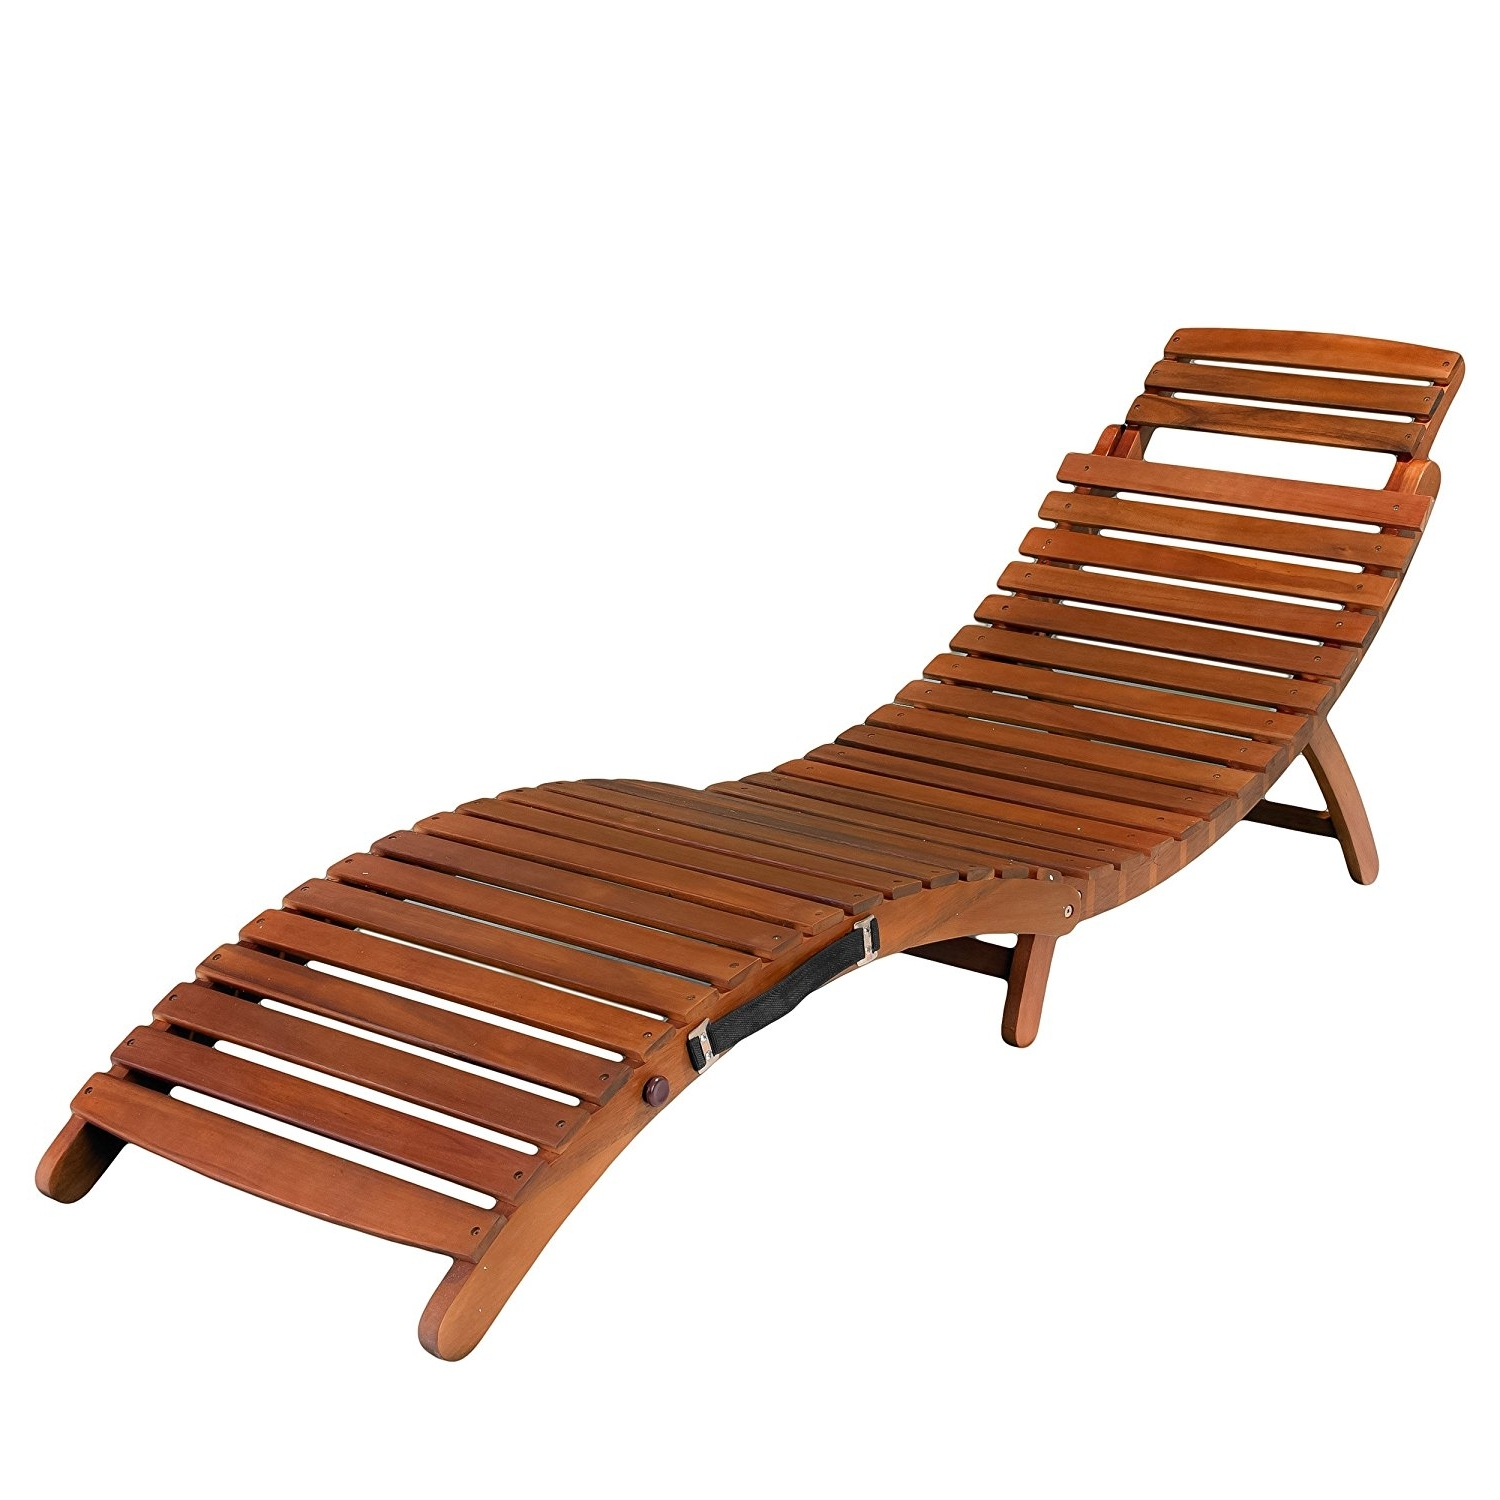 Hardwood Chaise Lounge Chairs With Regard To Well Known Amazon: Best Selling Del Rio Wood Outdoor Chaise Lounge (View 7 of 15)